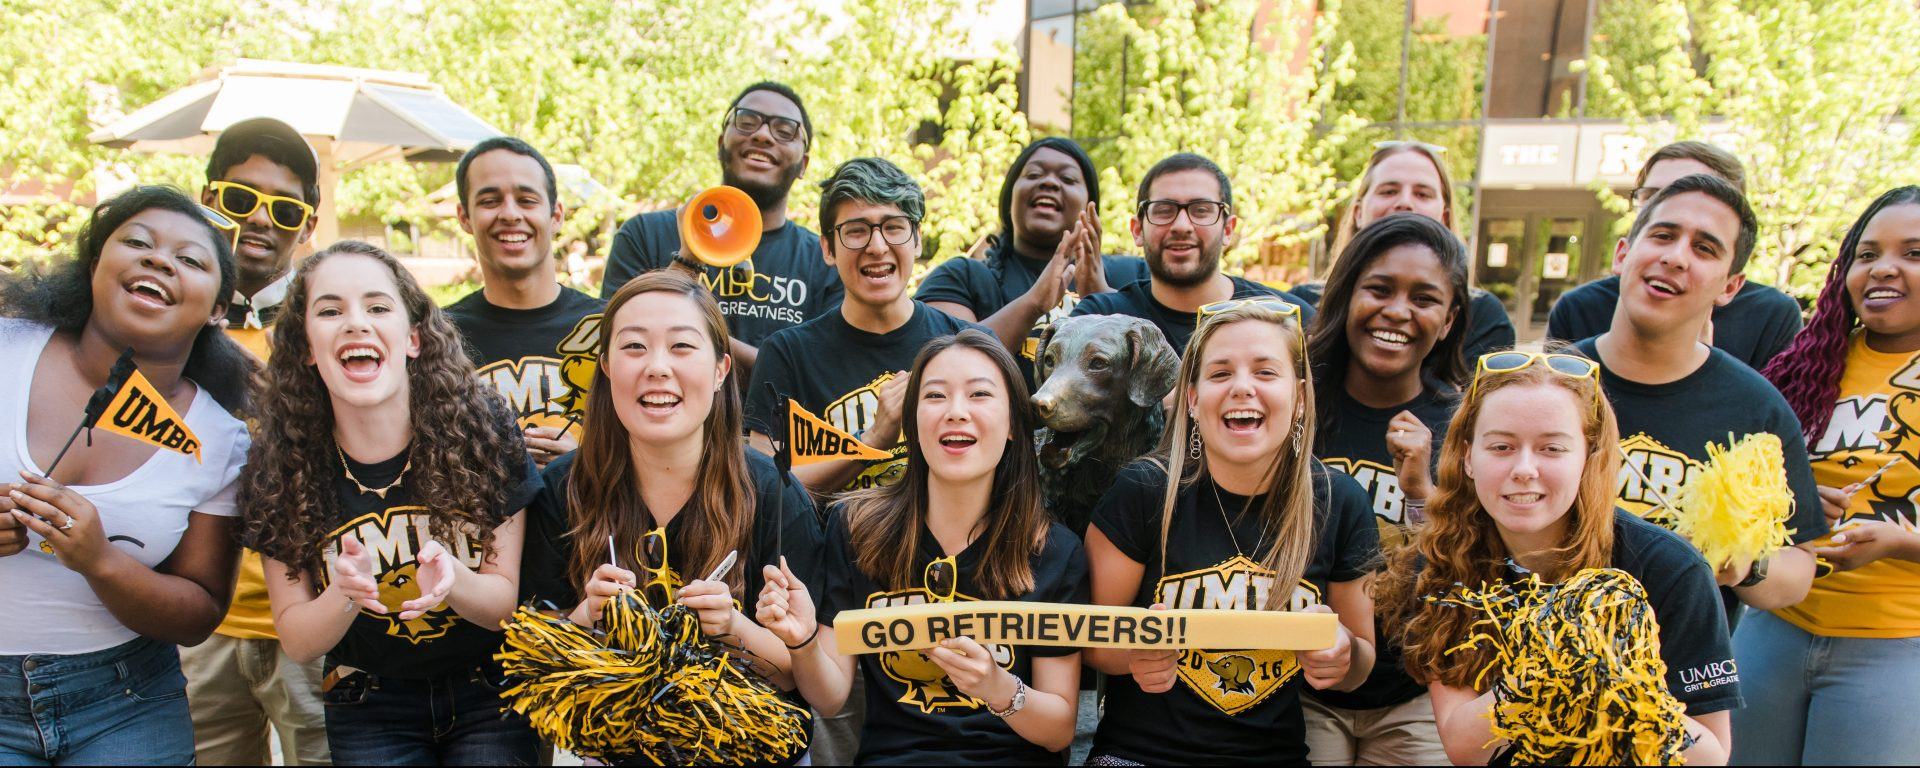 Growing UMBC community celebrates U.S. News spotlight on innovation and teaching